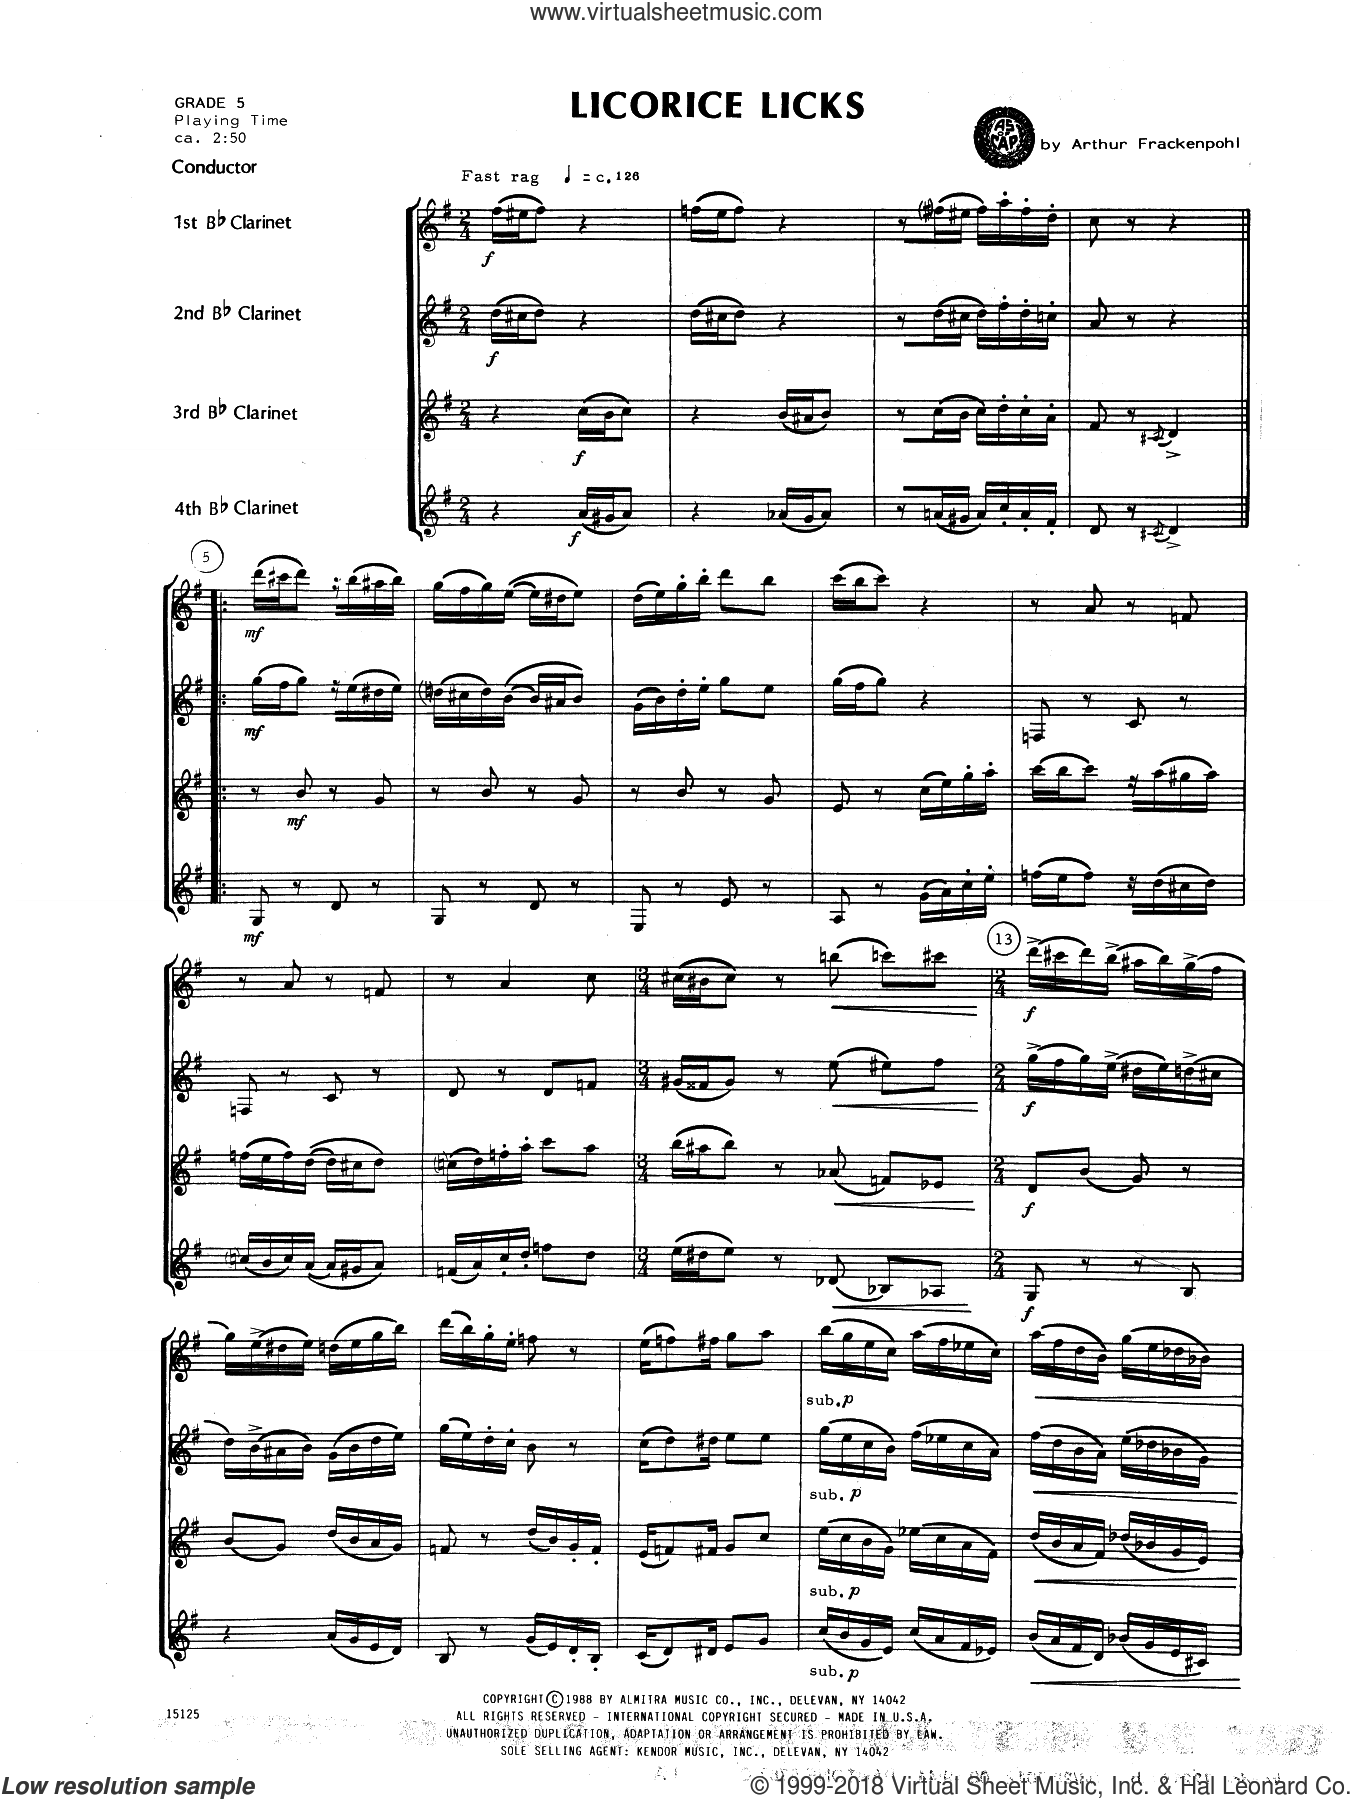 Licorice Licks (COMPLETE) sheet music for clarinet quartet by Arthur Frackenpohl, intermediate skill level